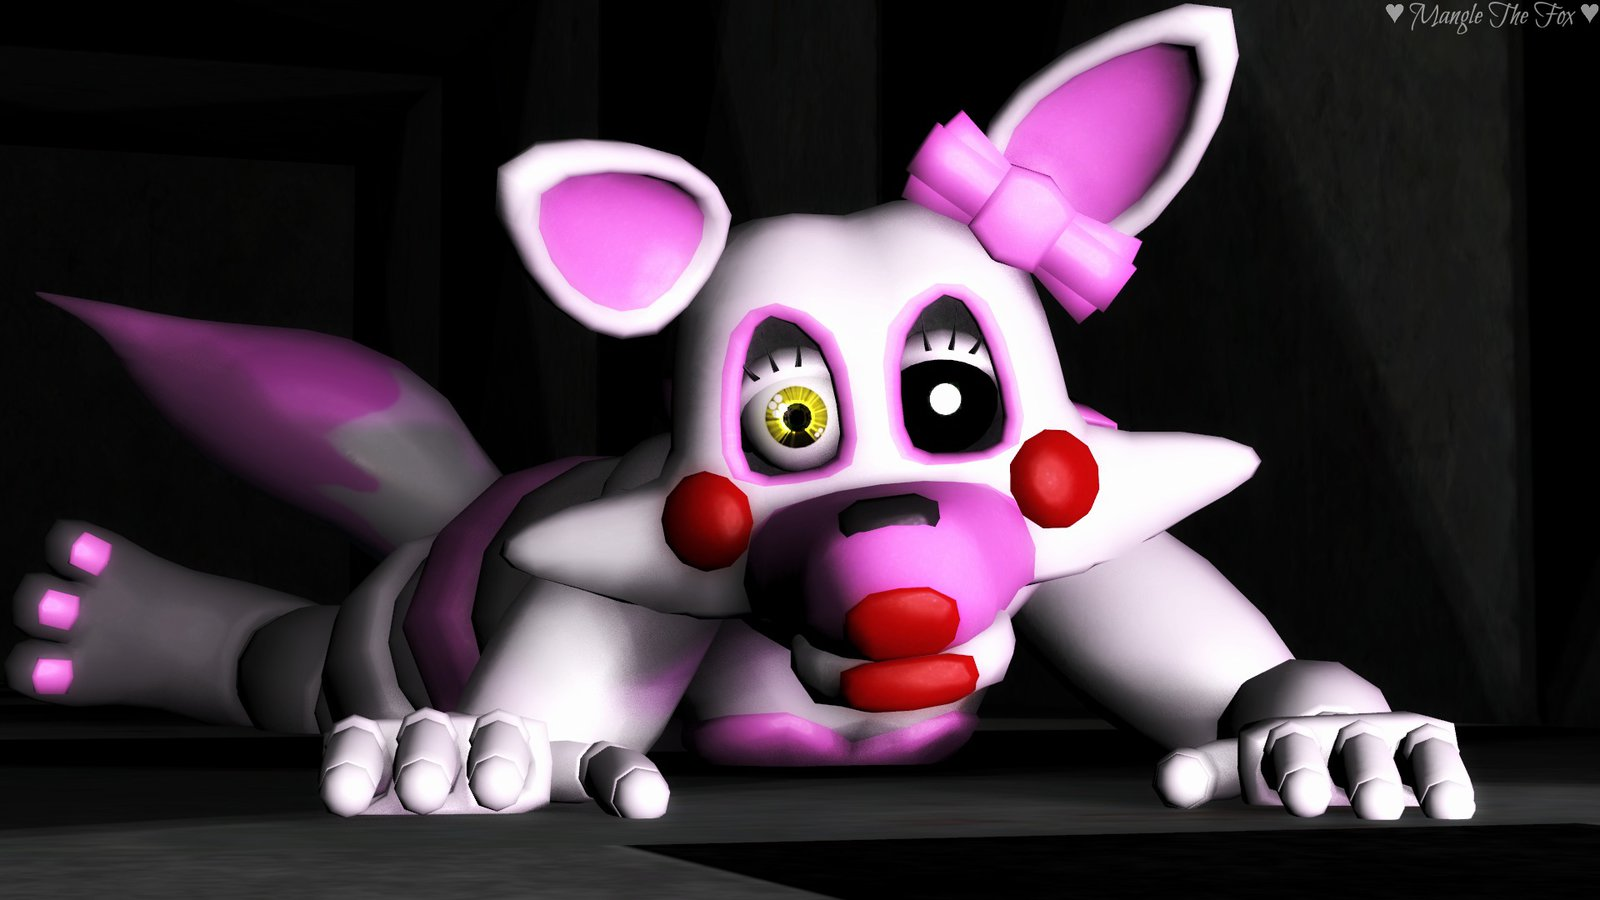 fnaf sfm baby mangle crawling in the vent oleh manglethefoxsfm da5zptn